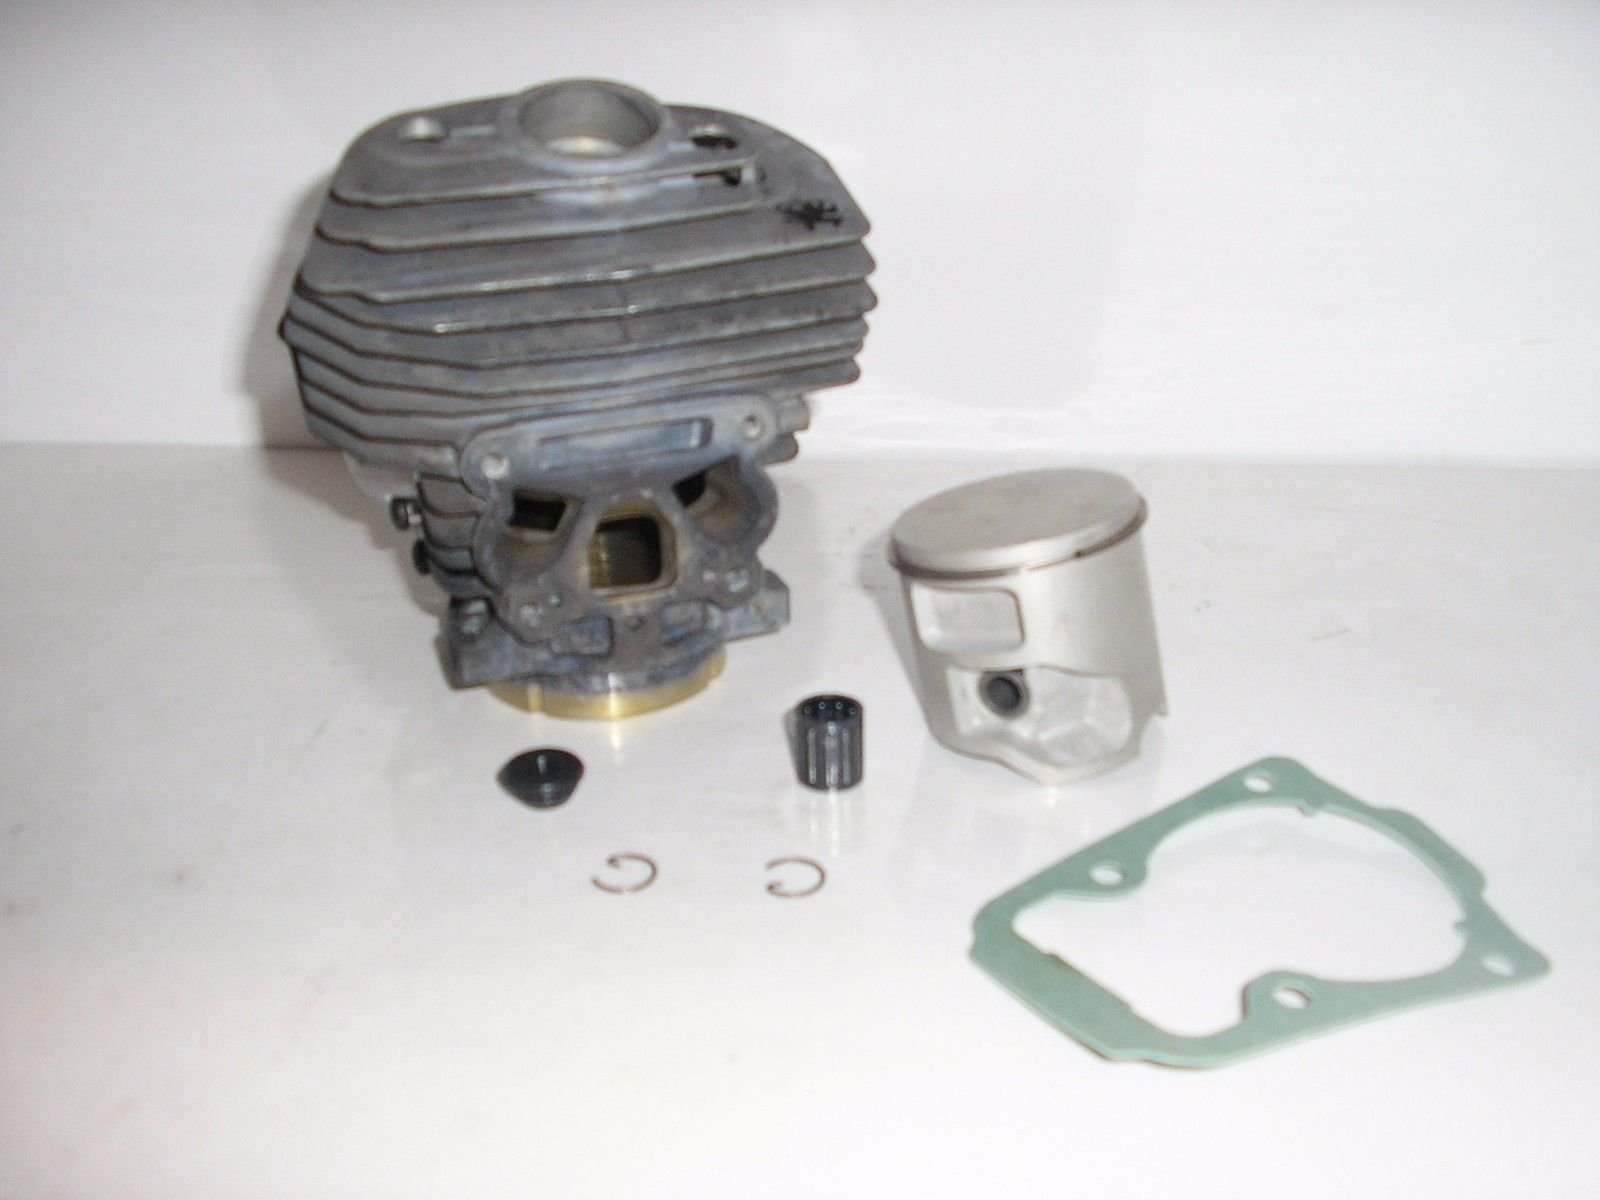 Lil Red Barn Husqvarna 562xp, 560xp Cylinder Kit, 46mm, Genuine OEM Part # 575355803 Installation Instructions Included Two Day Standard Shipping to All 50 States!